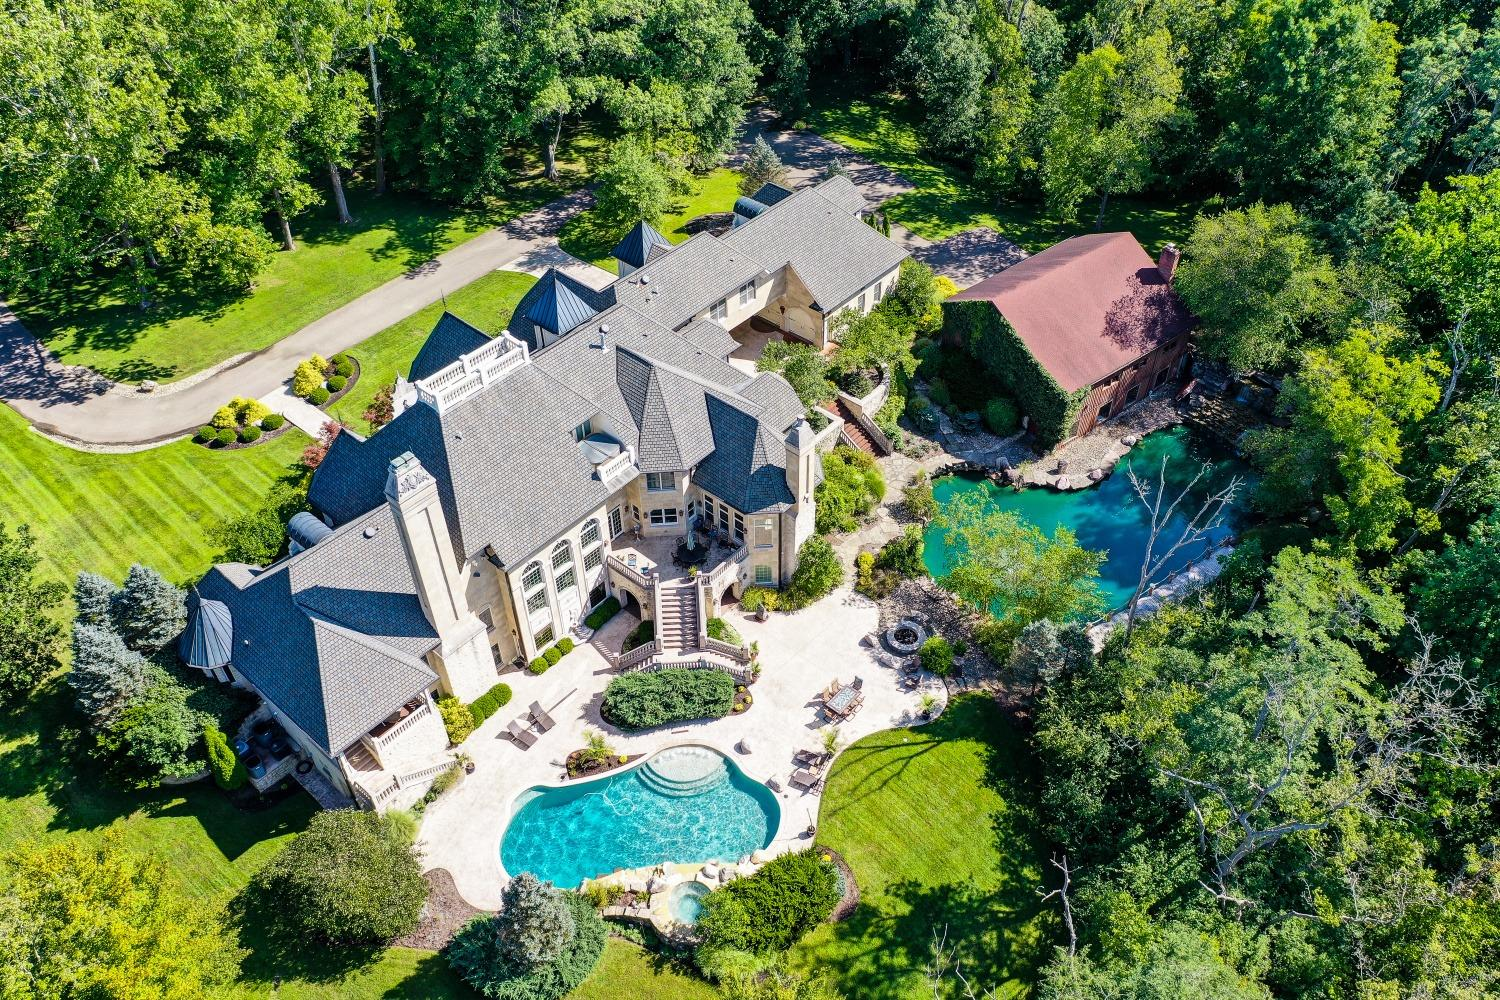 The outdoor kitchen, stocked pond, Gunite pool, hot tub, fire-pits, barn, multiple porches and terraces were all designed with outdoor entertaining in mind.